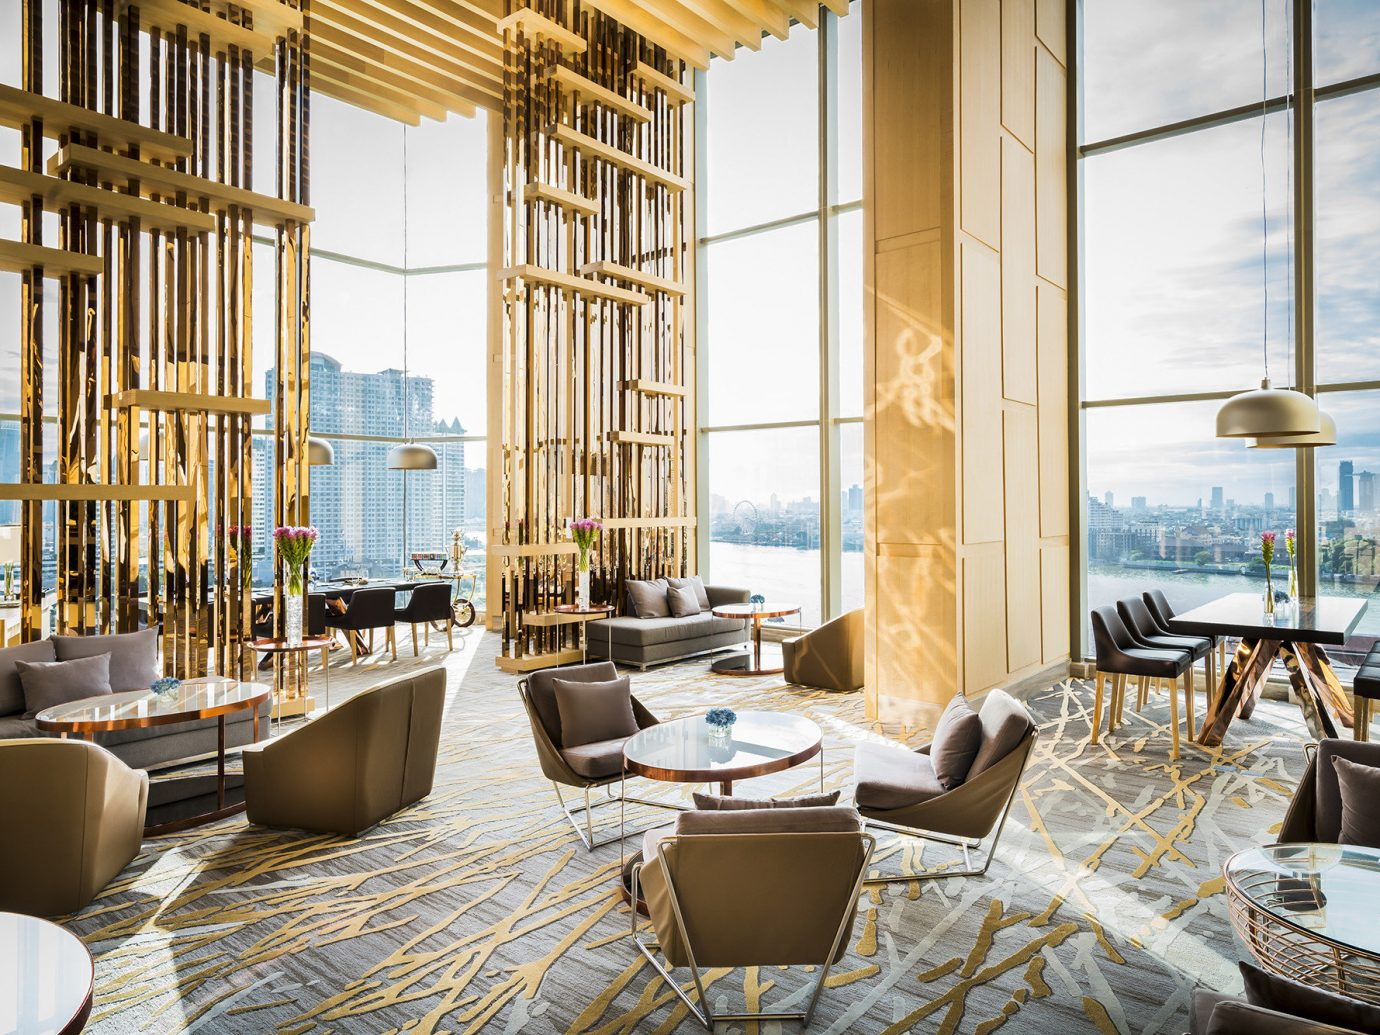 Hotels indoor window room property estate living room home interior design condominium restaurant real estate Resort Design window covering Lobby Suite apartment furniture